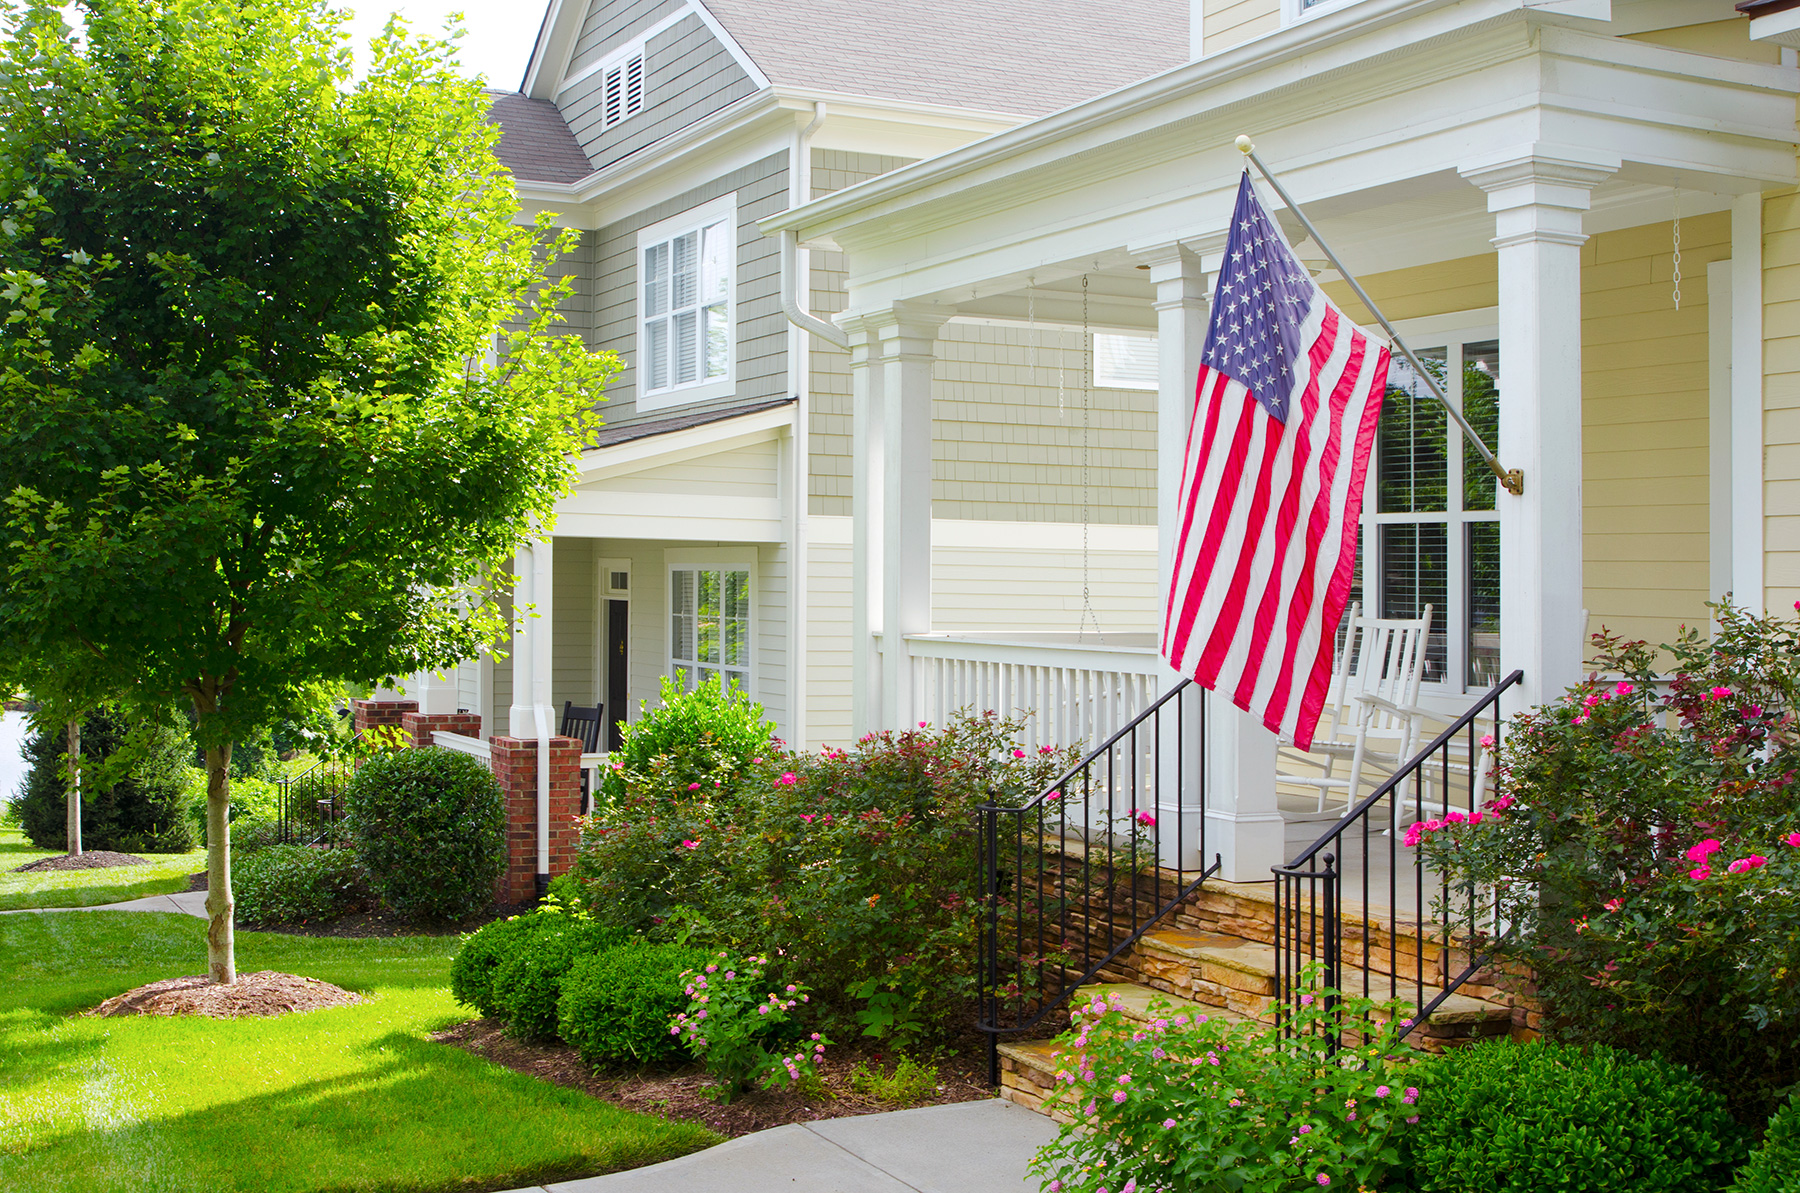 American flag displayed on porch